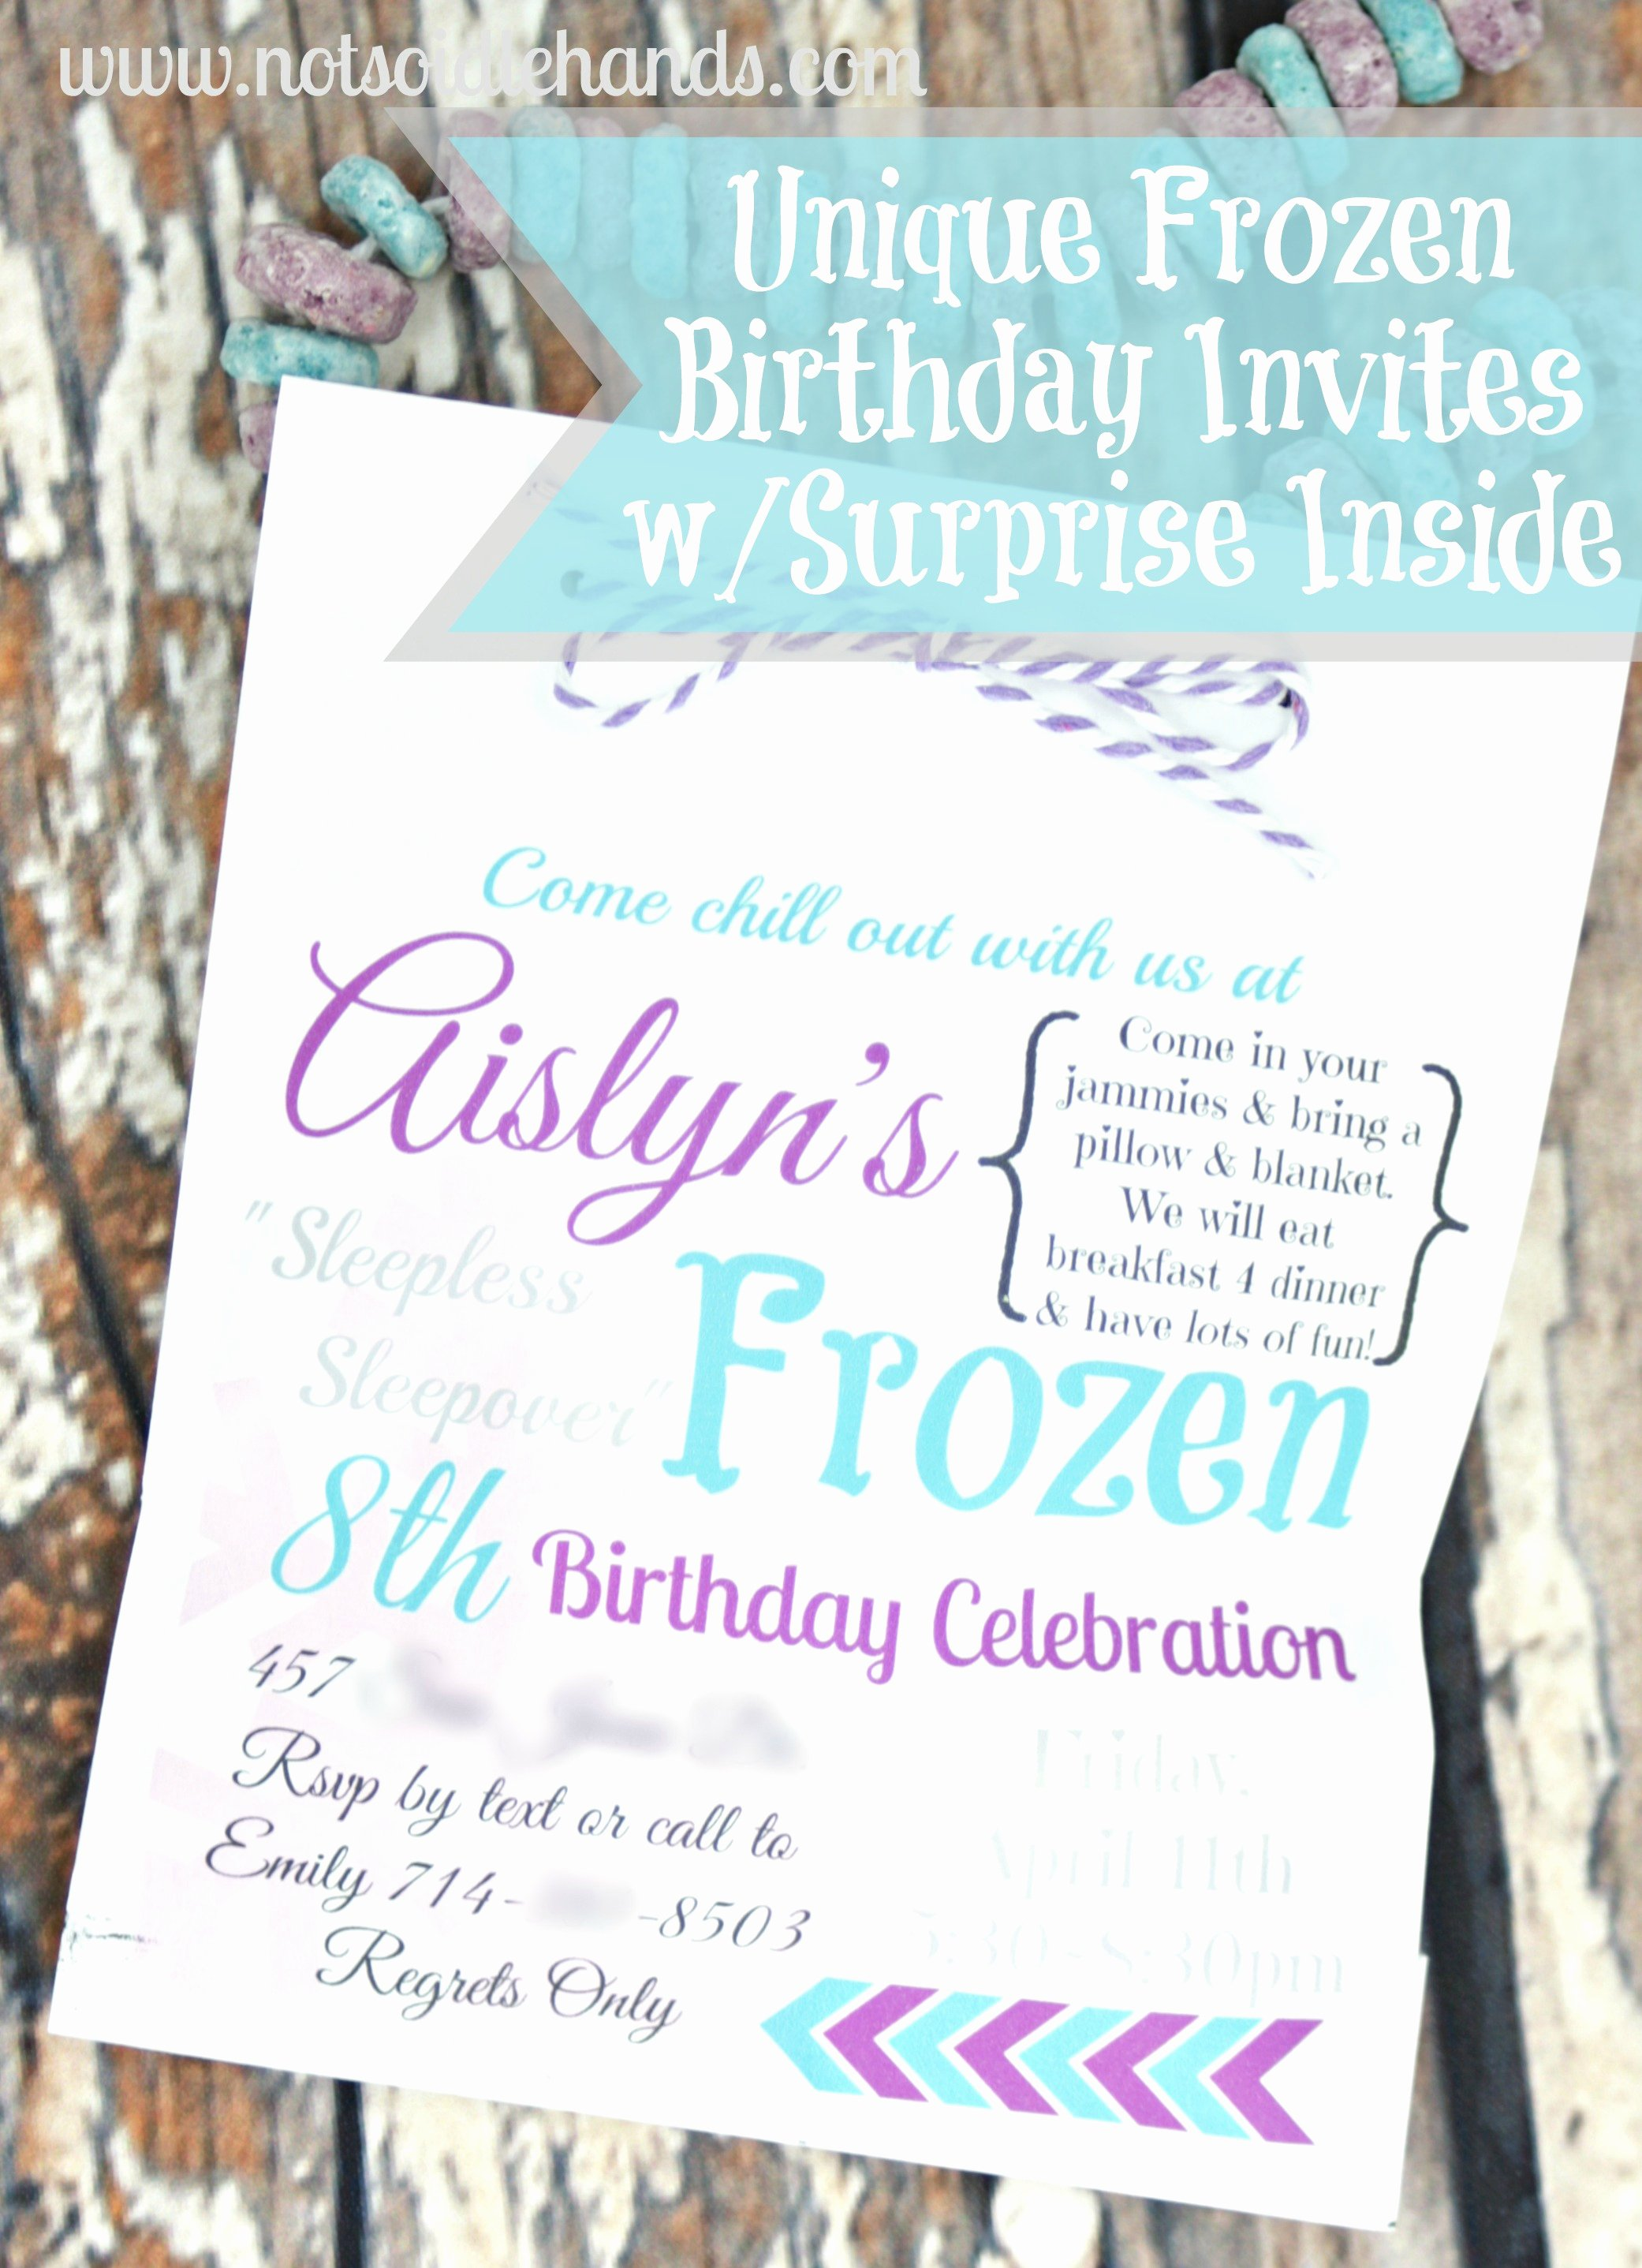 Frozen Bday Party Invitations Lovely Unique Frozen Birthday Party Invites with Treat Inside Party Part 2